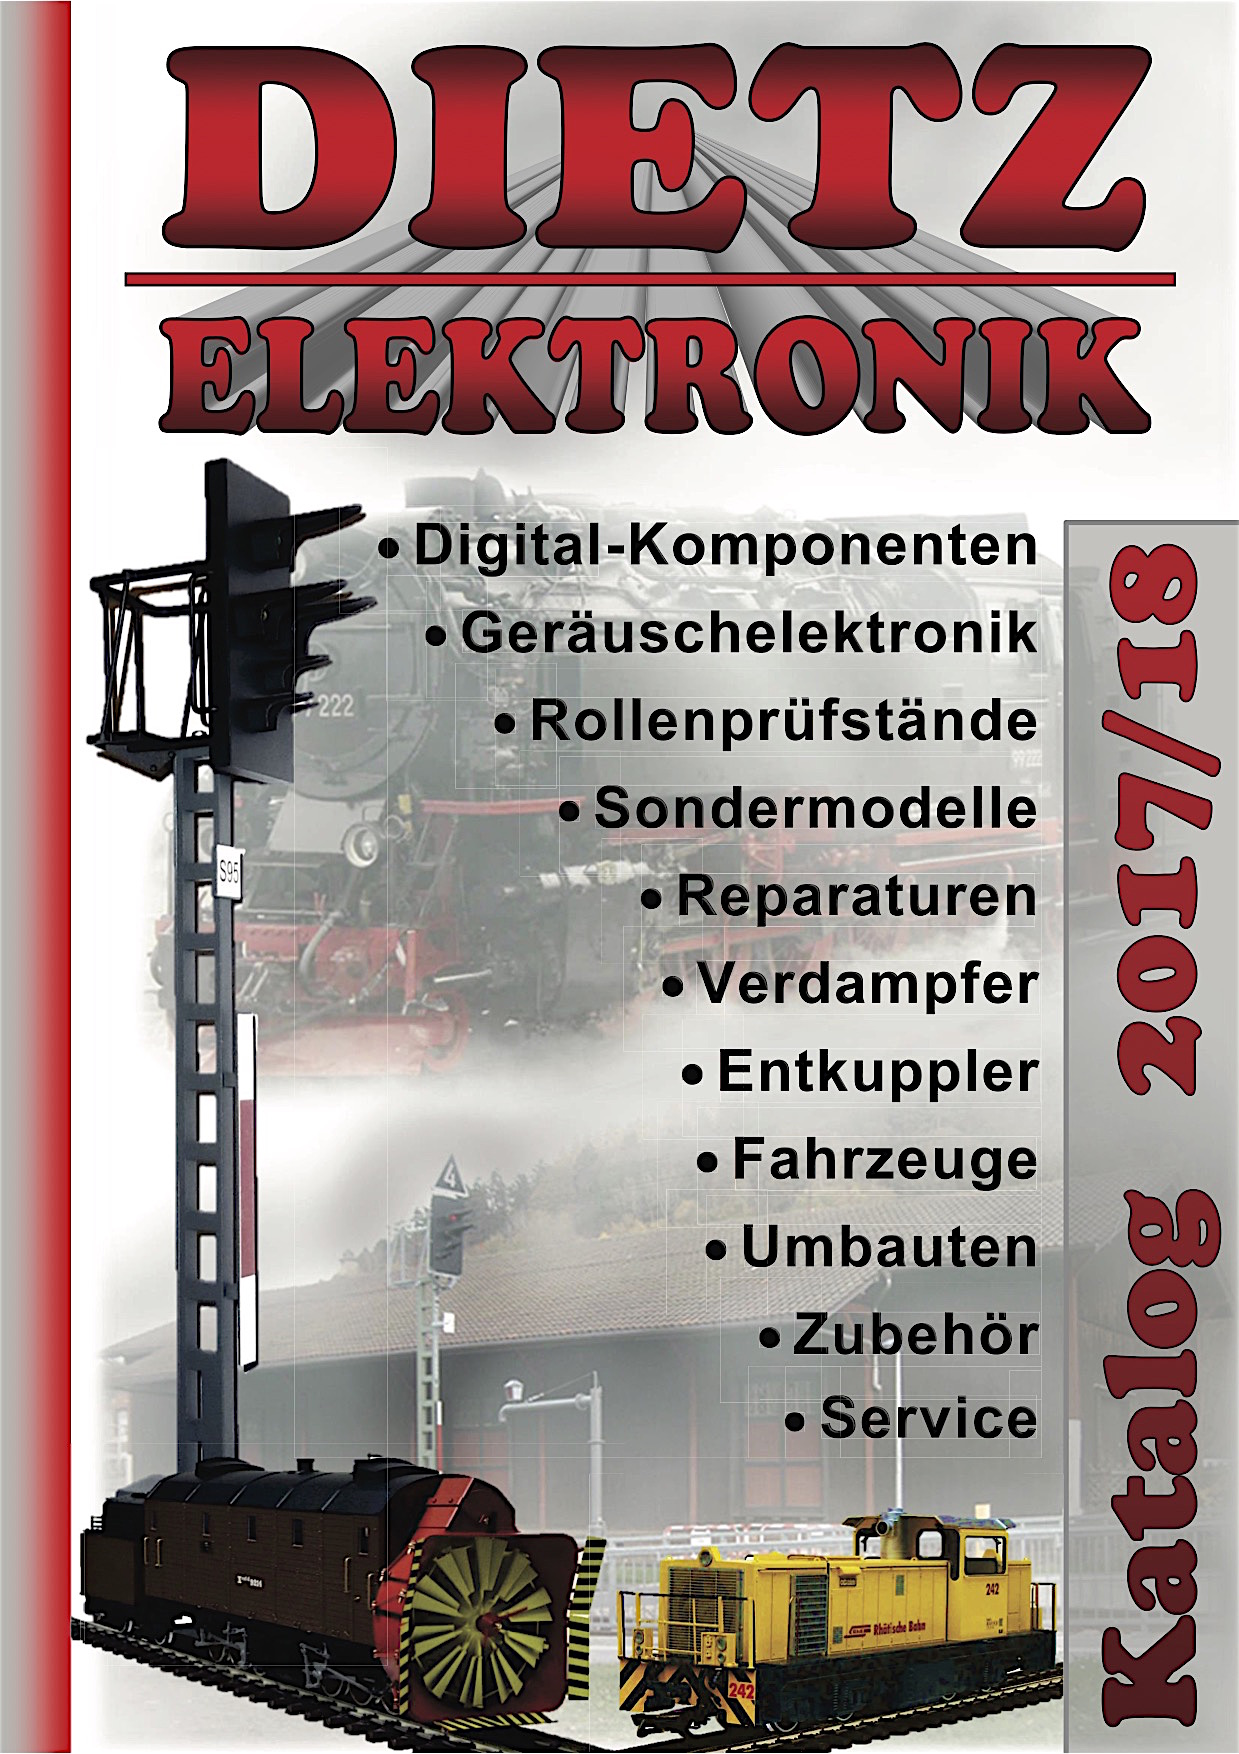 Dietz Katalog (Catalogue) 2017/2018